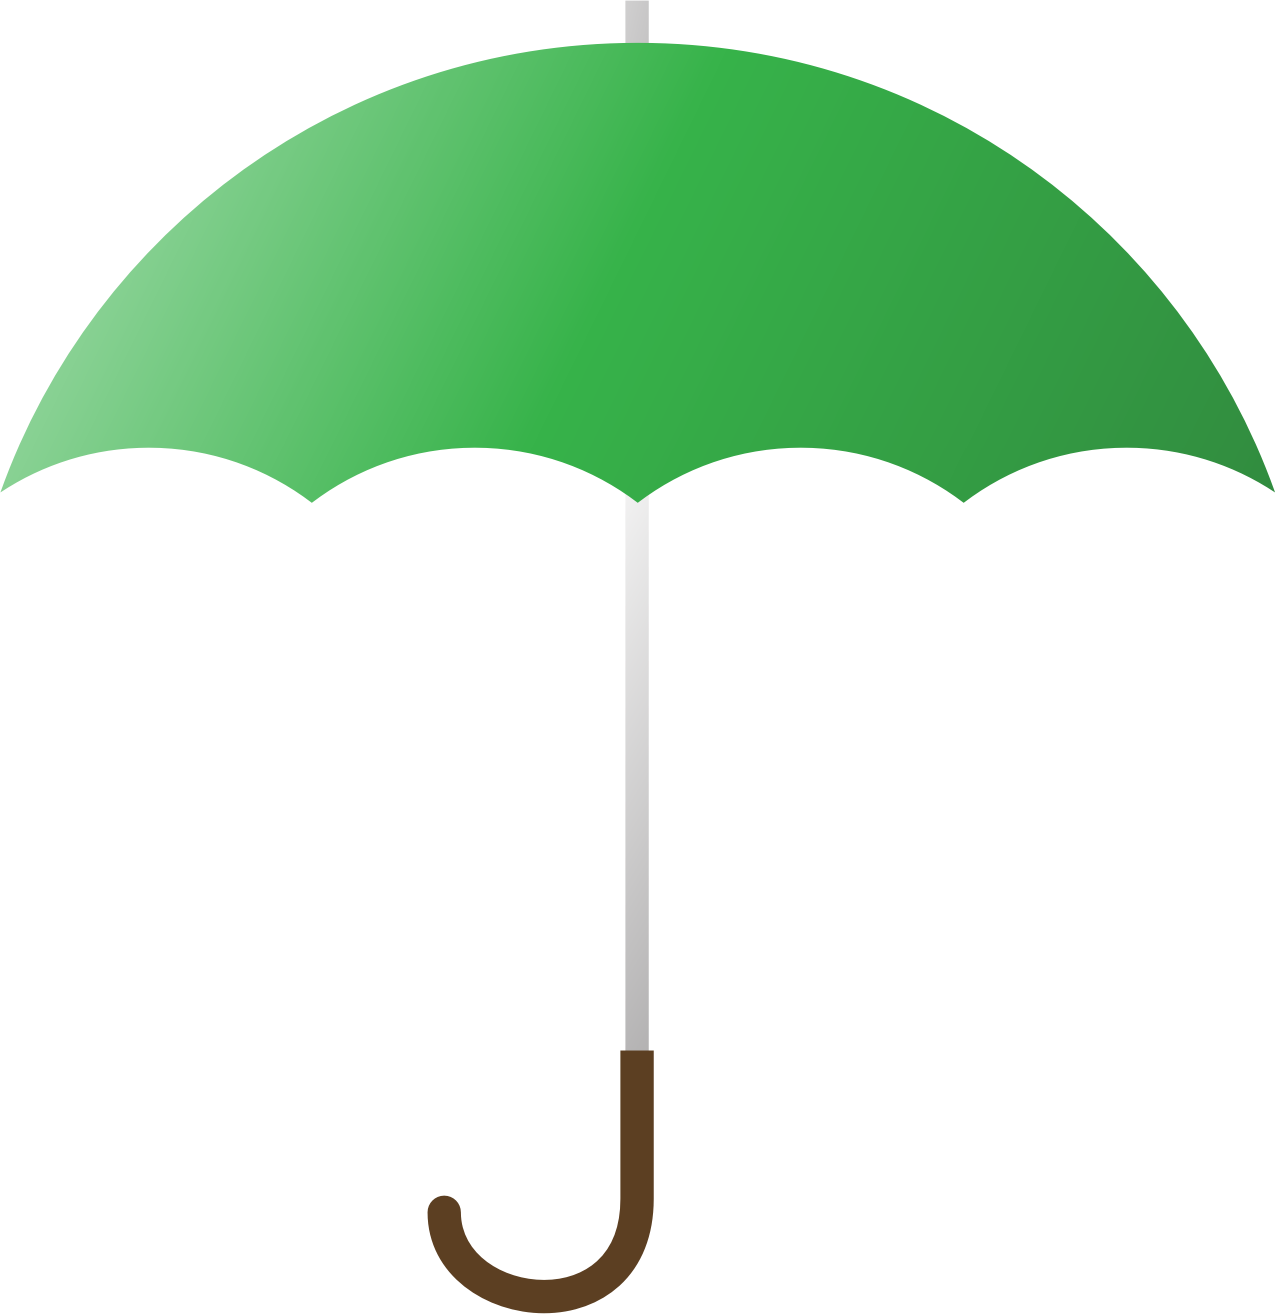 Clipart umbrella simple umbrella. Green big image png